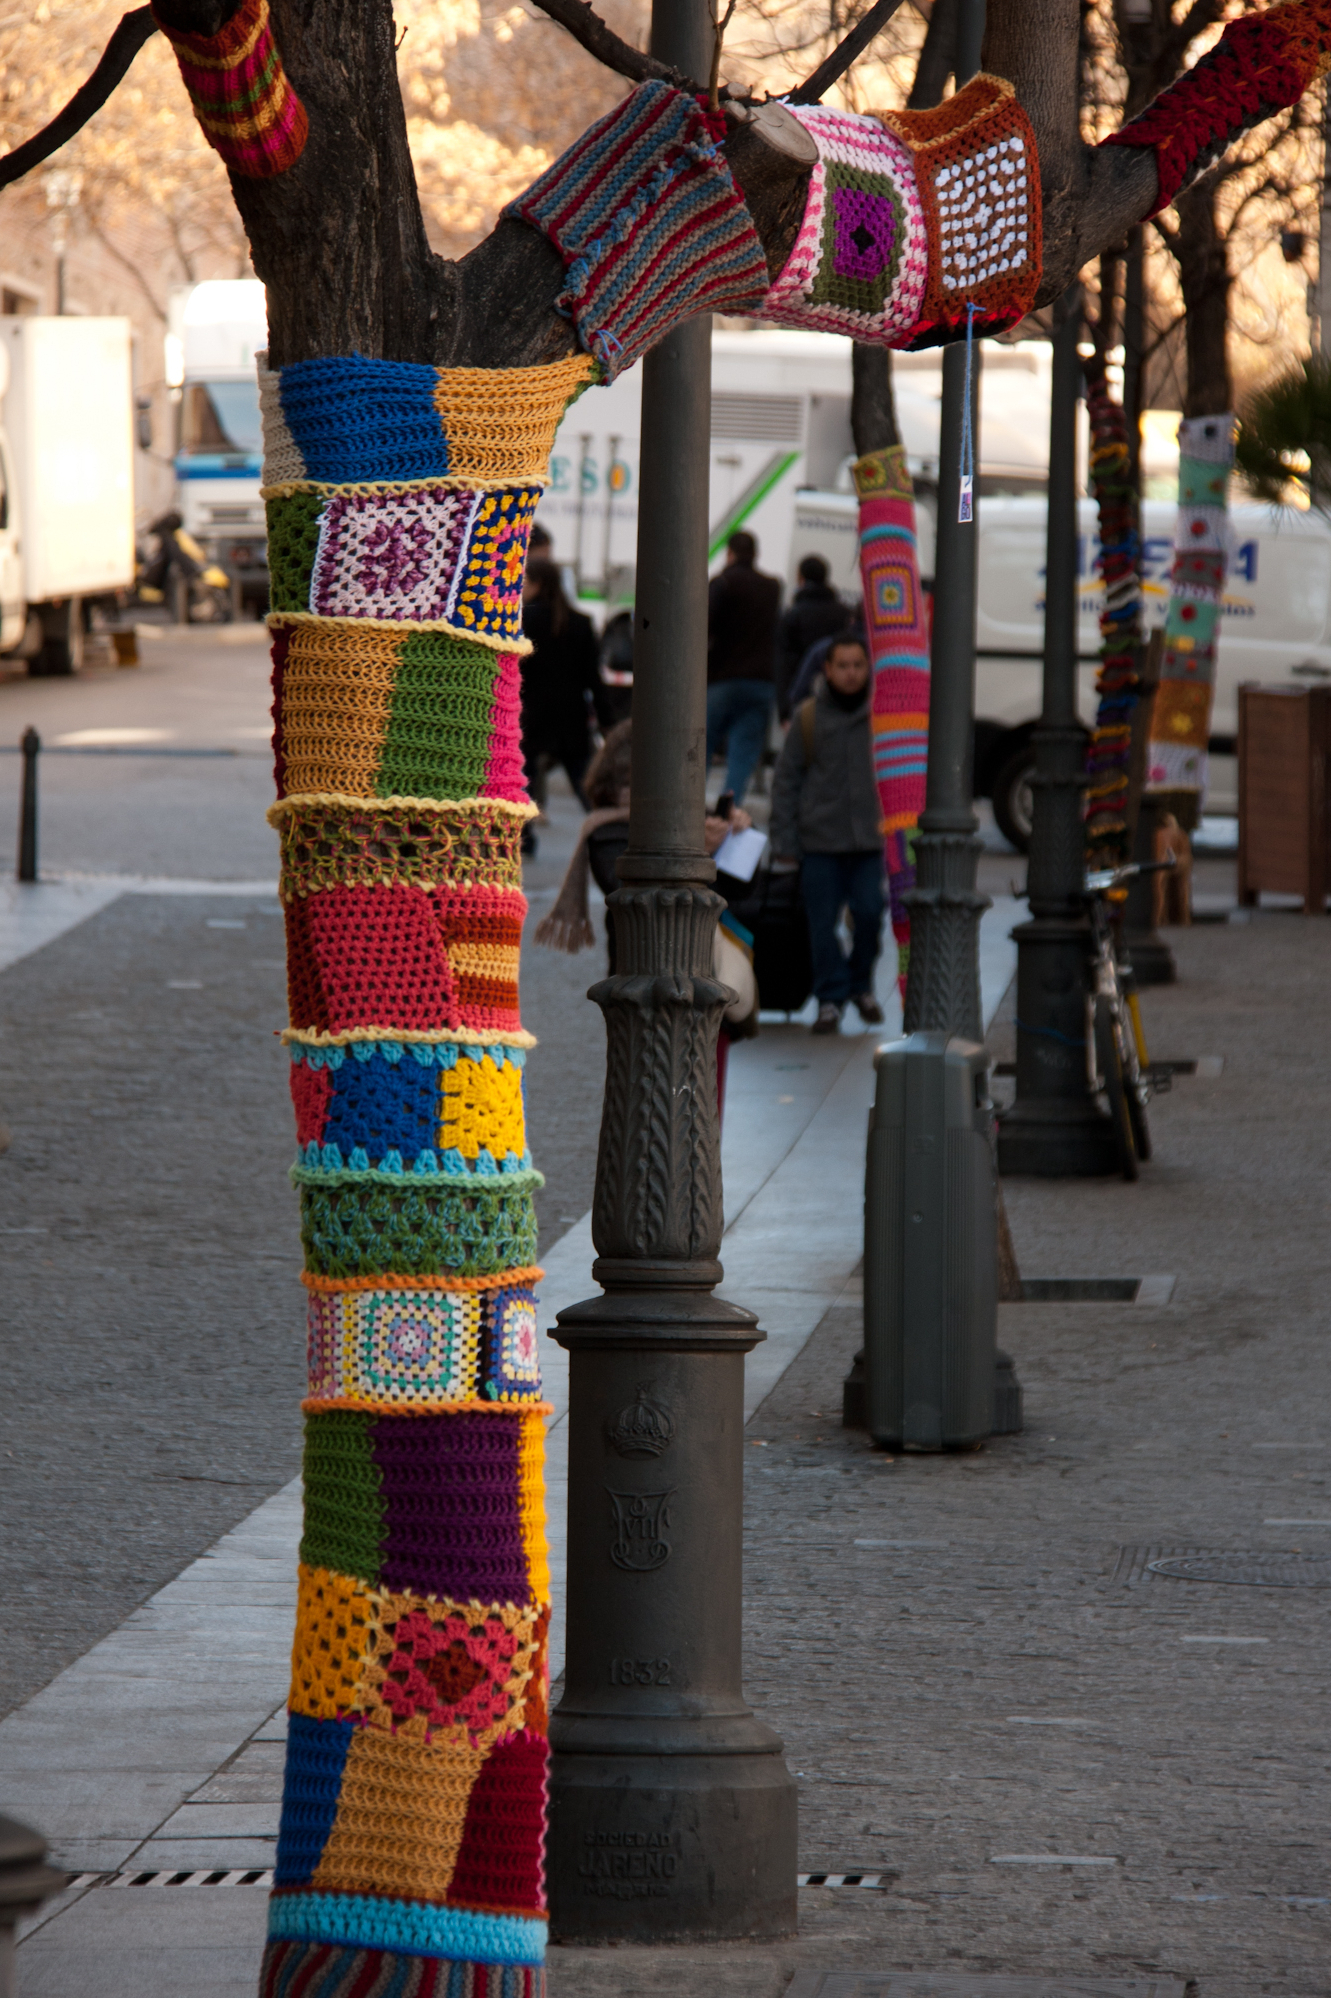 http://upload.wikimedia.org/wikipedia/commons/b/b0/Yarn_Bombing_Madrid_1.jpg